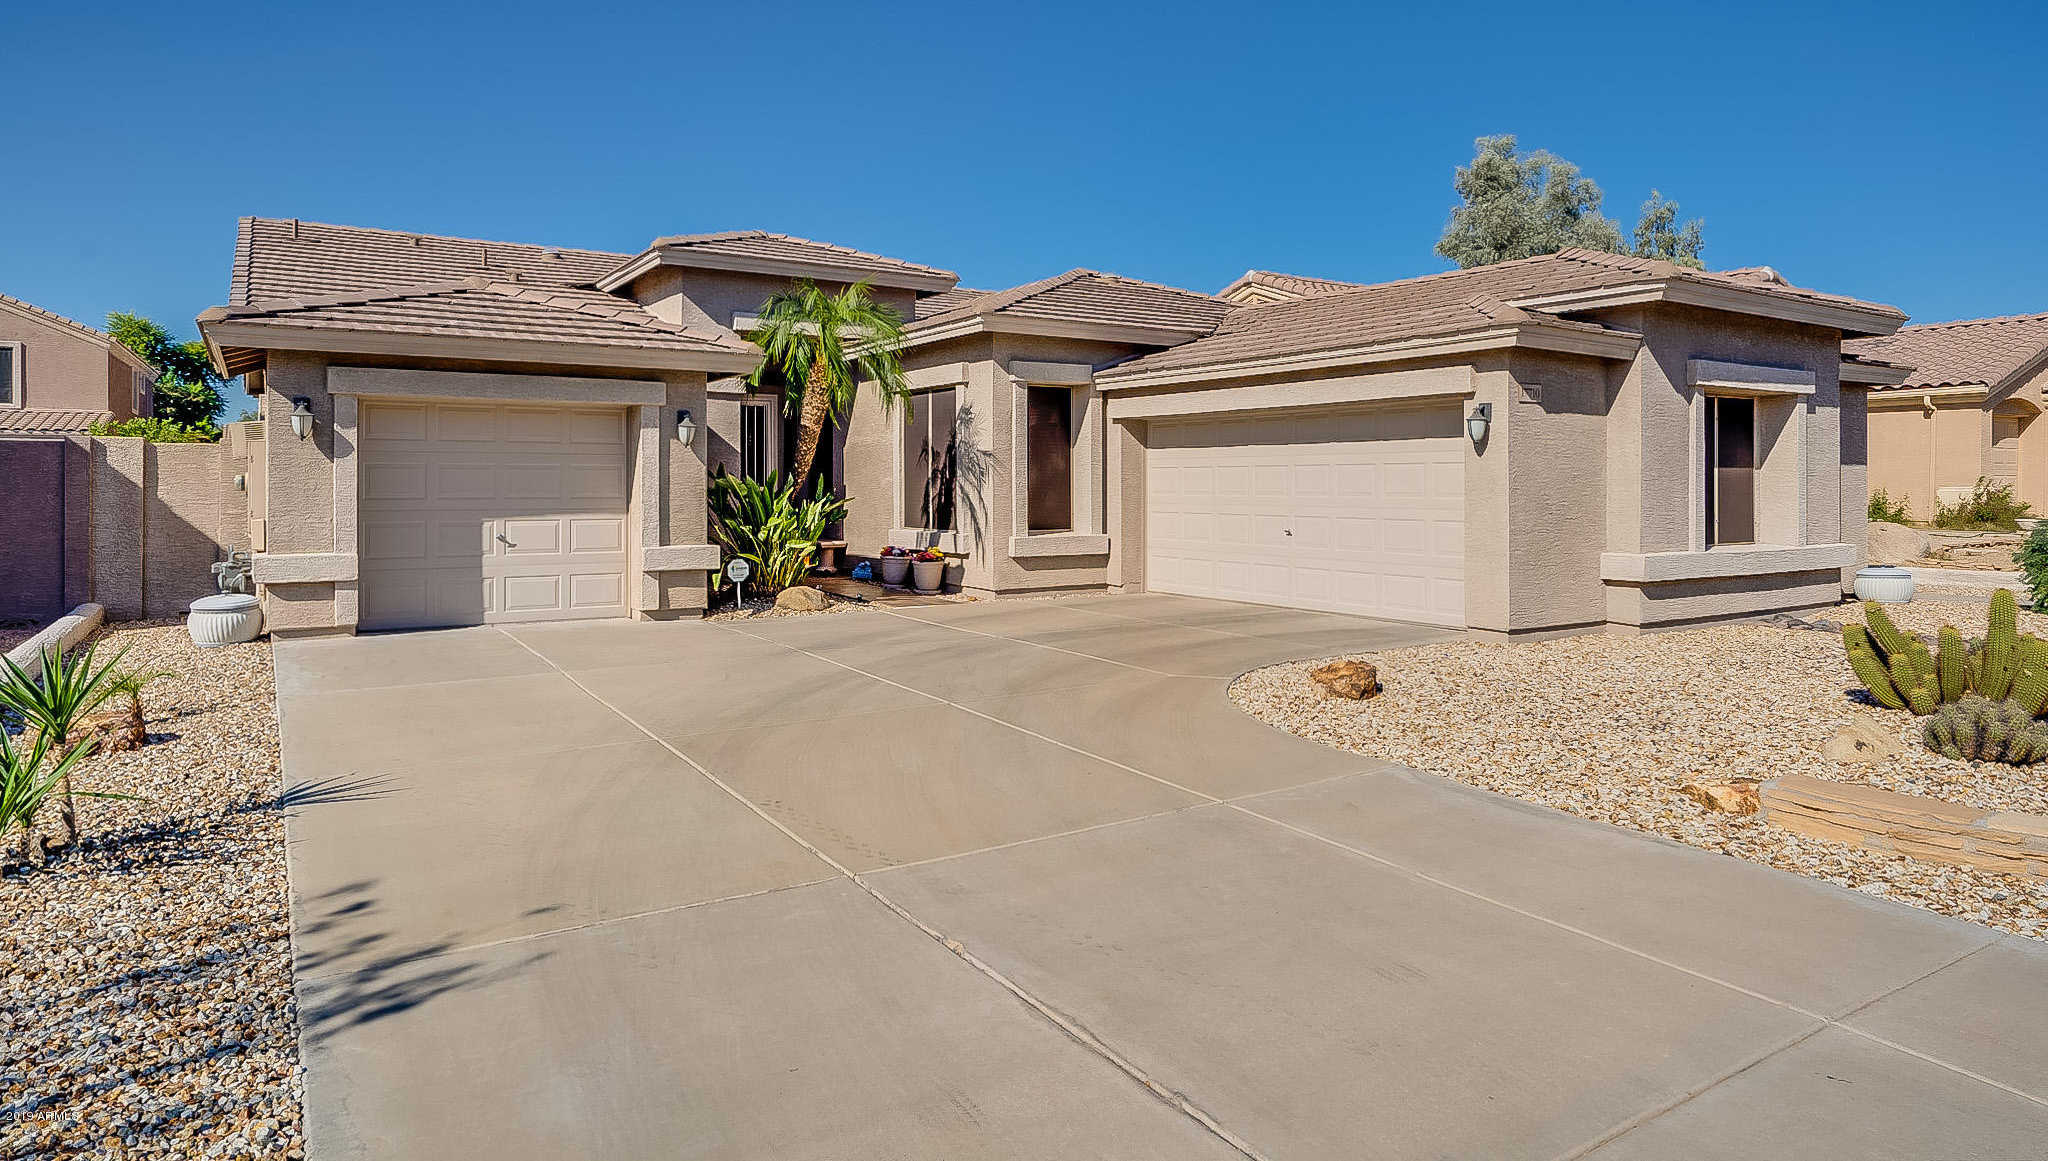 $394,500 - 3Br/2Ba - Home for Sale in Touchstone, Glendale